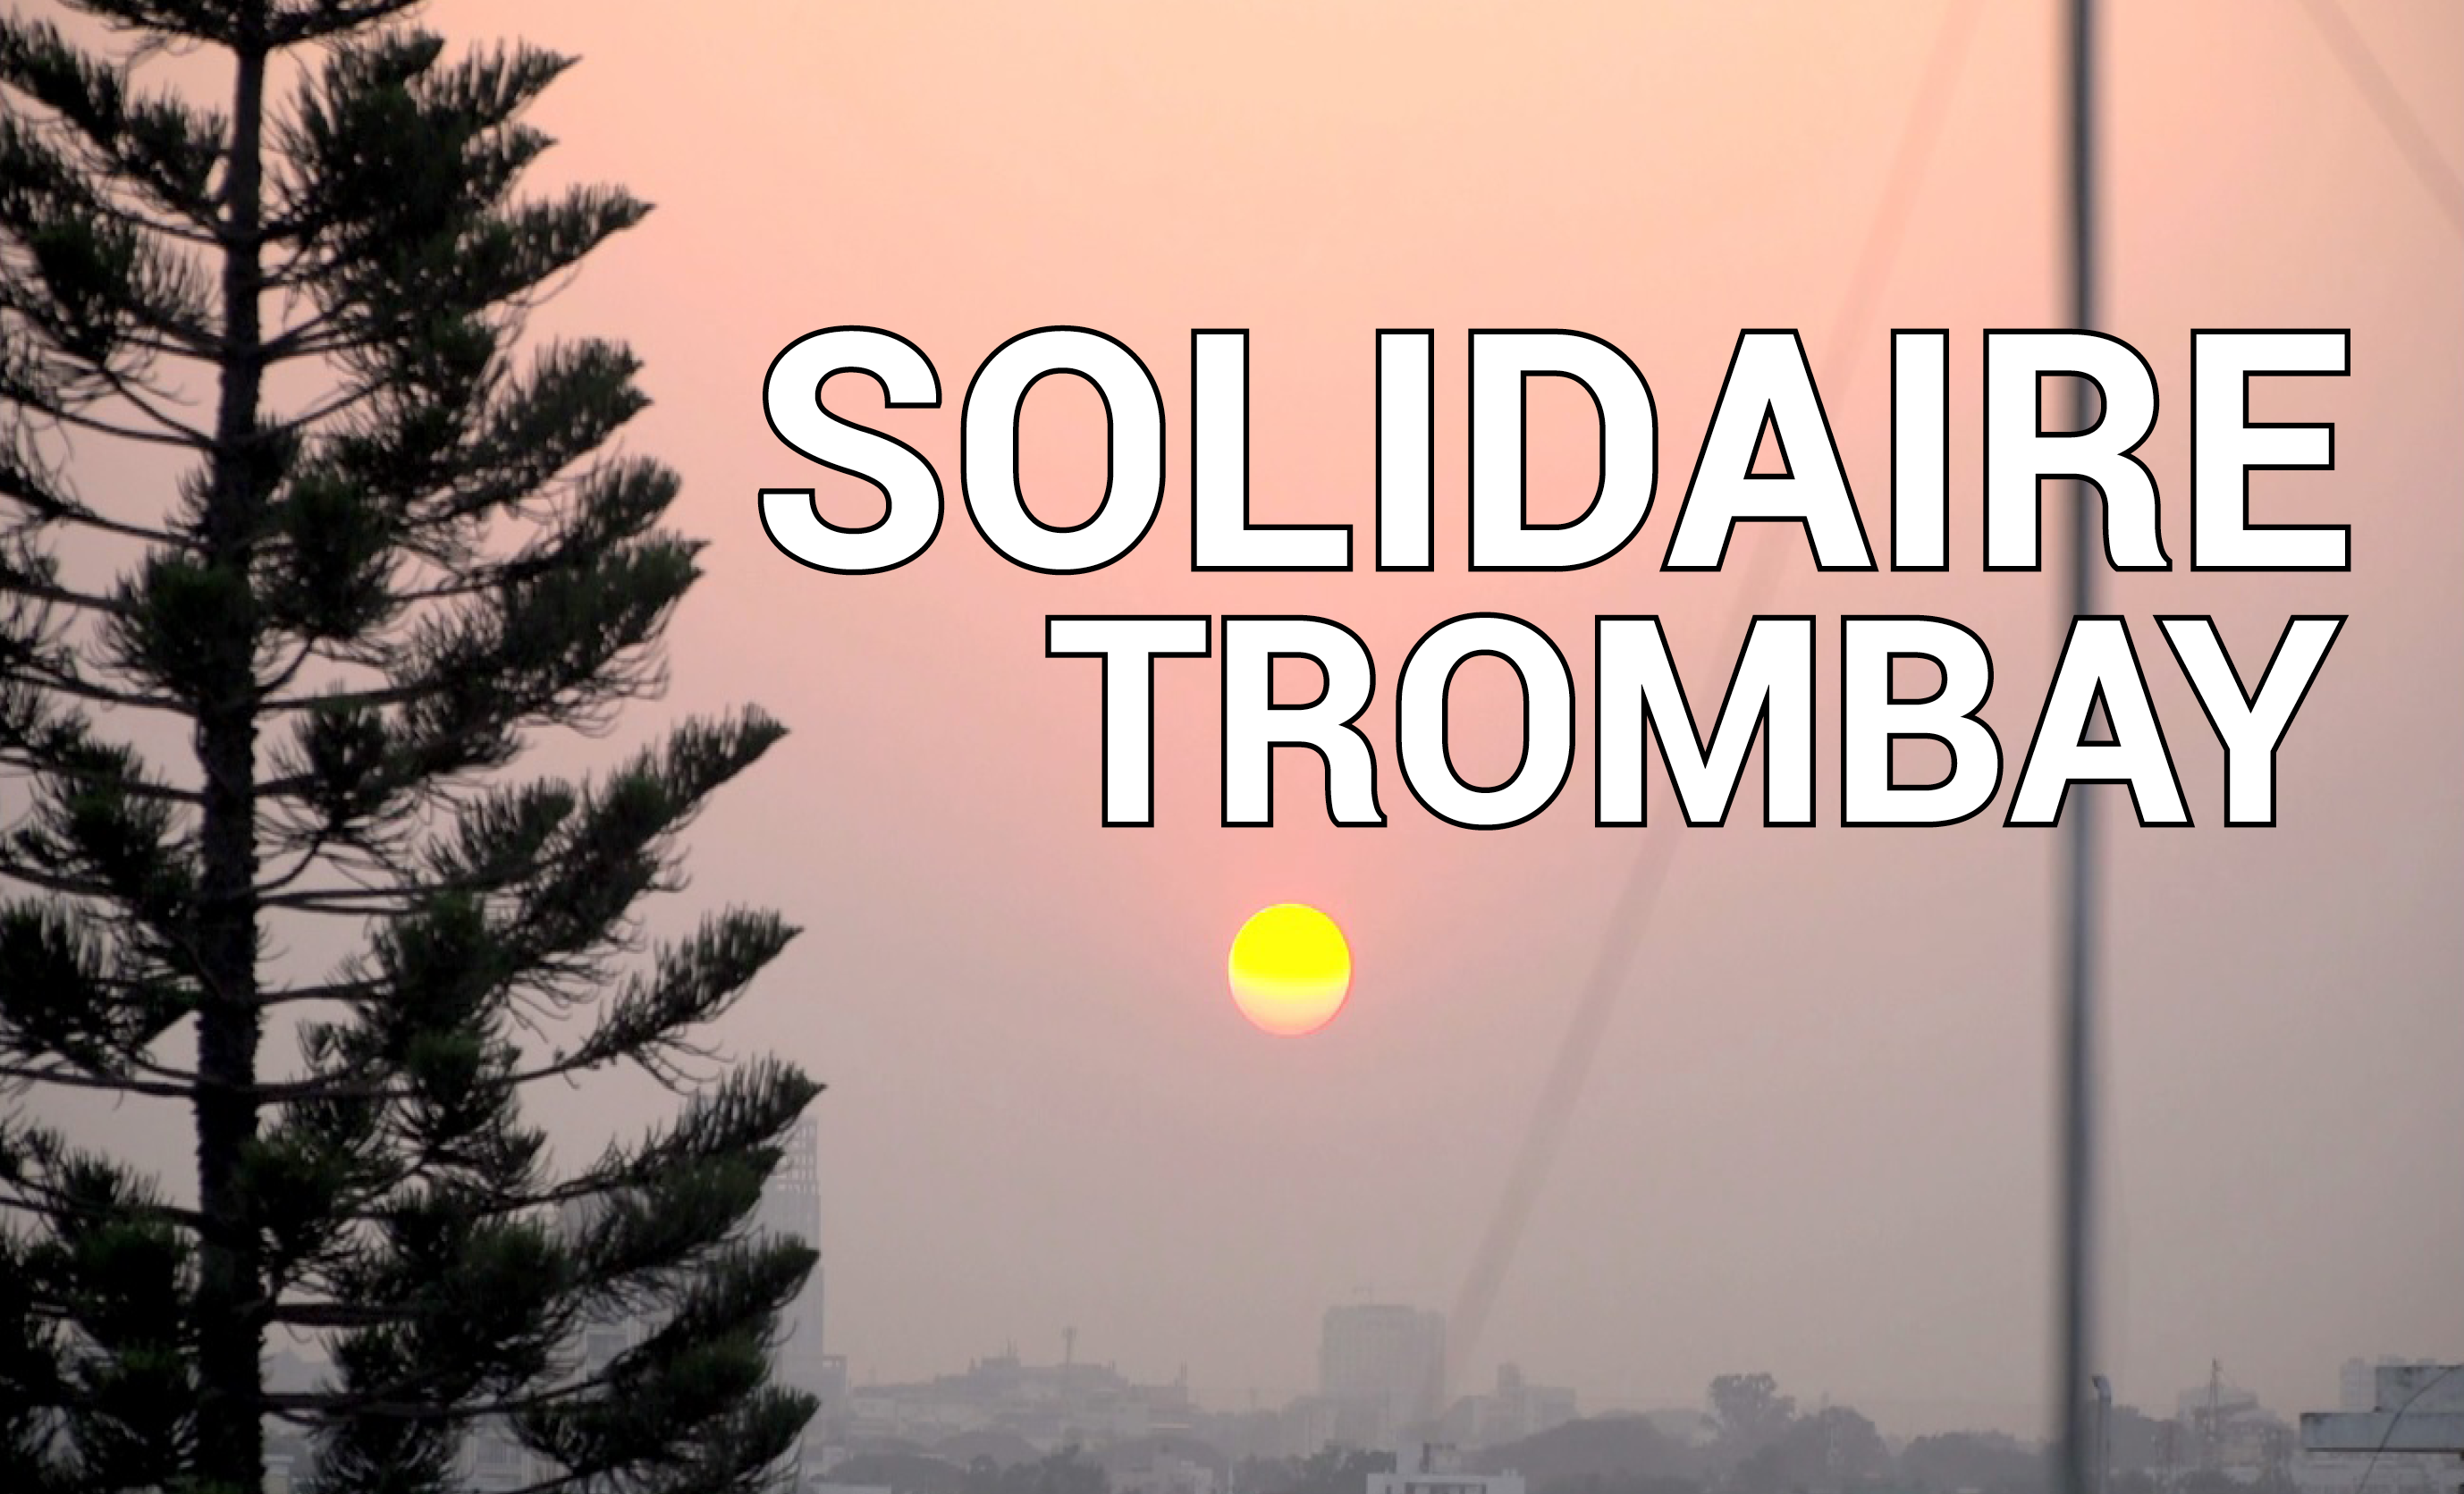 visuel_solidaire4-1528984856.png